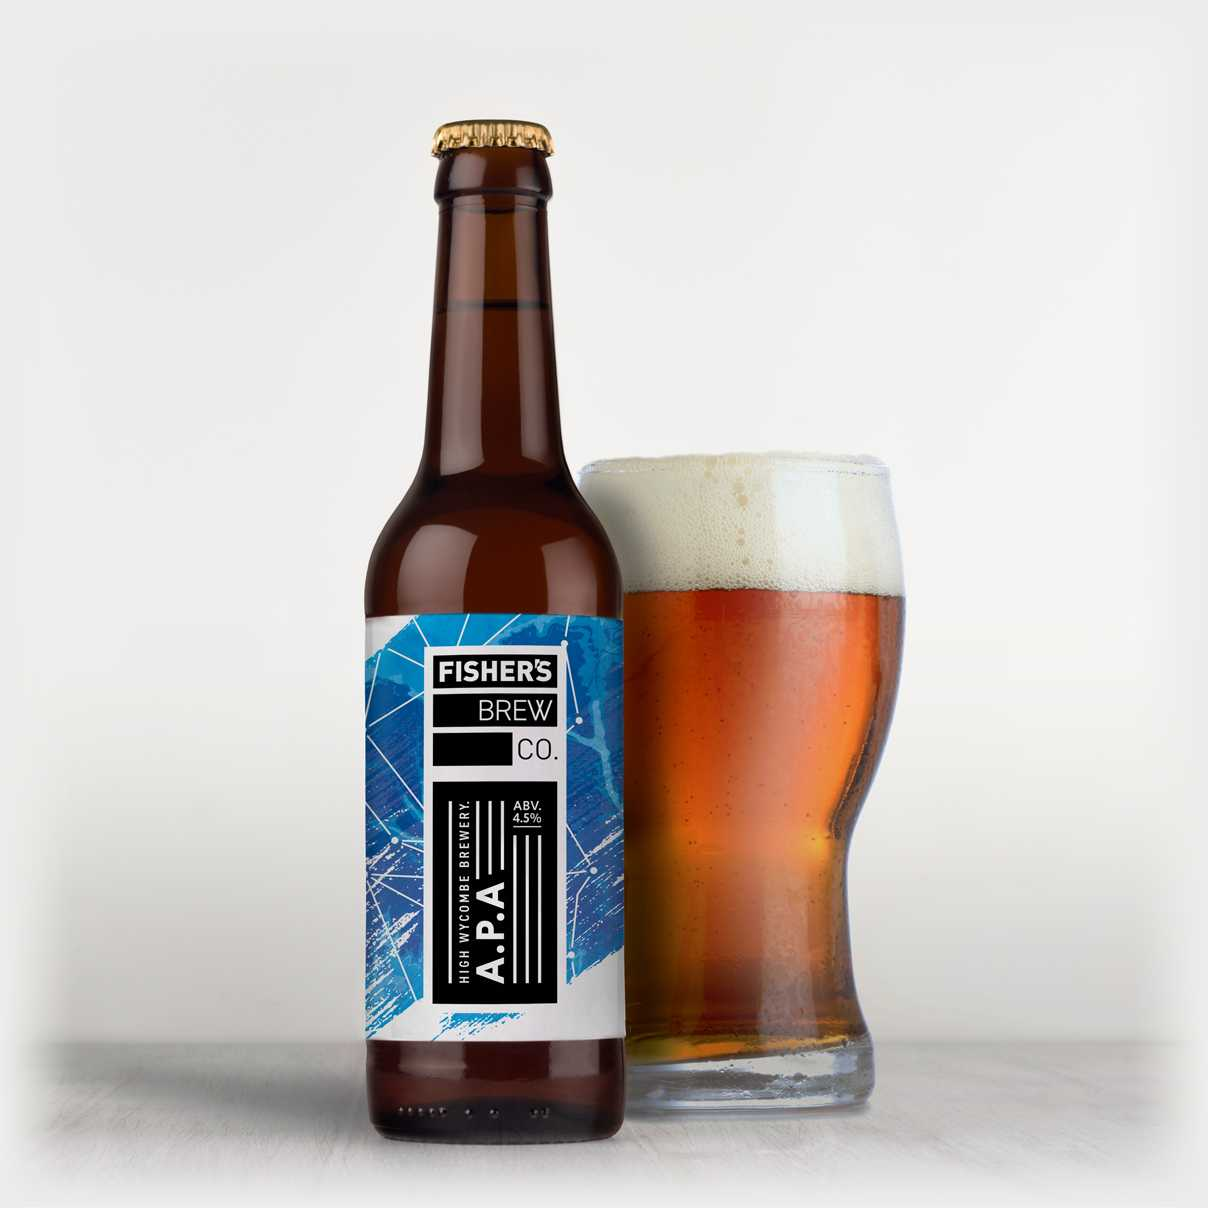 Fisher's branded APA bottle and glass of beer